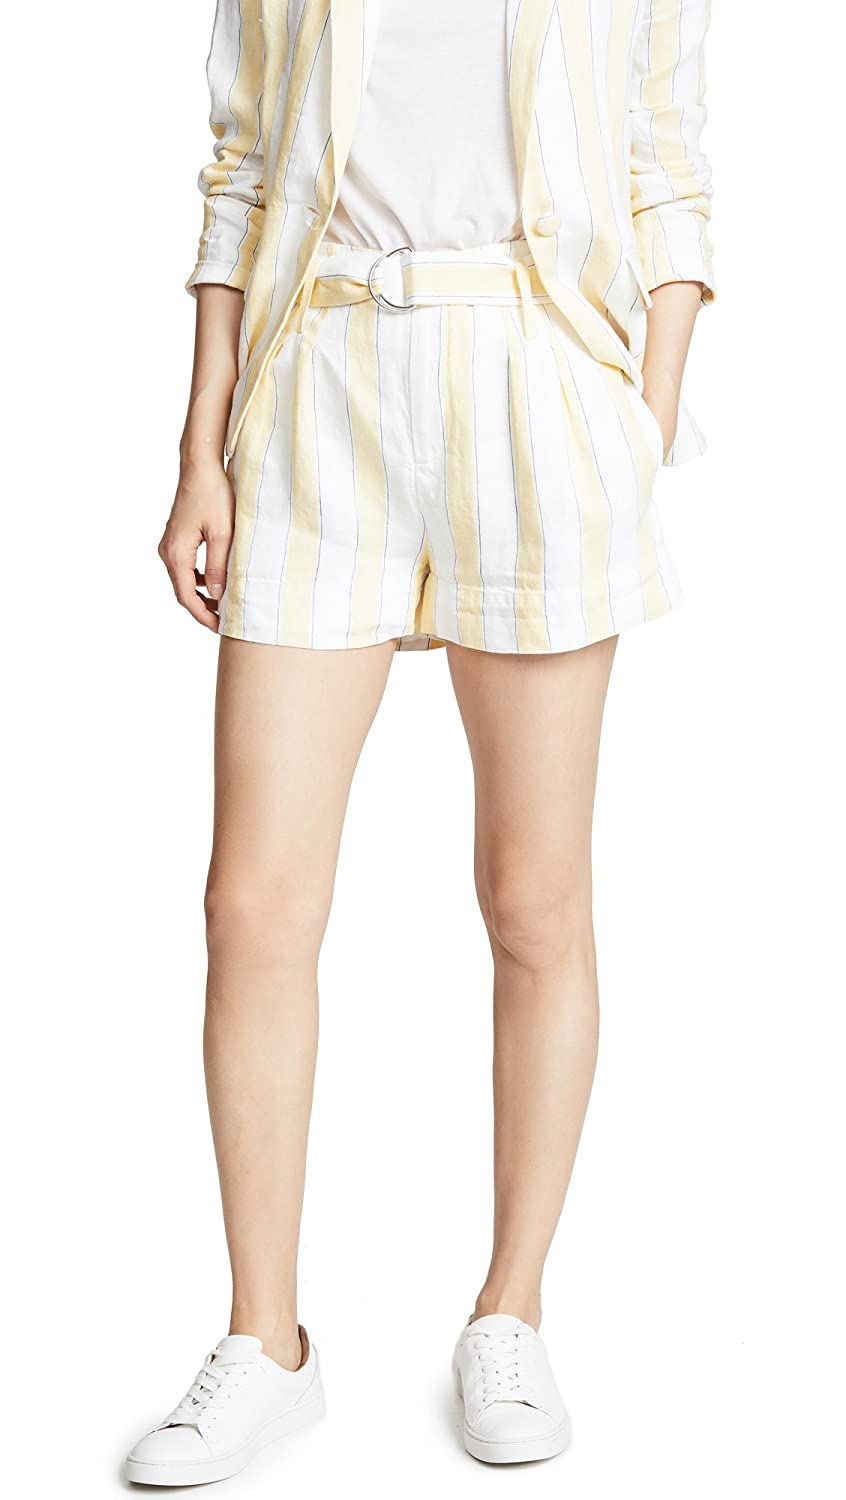 golden Haze Multi Frame Denim Womens Linen Striped HighWaist Shorts